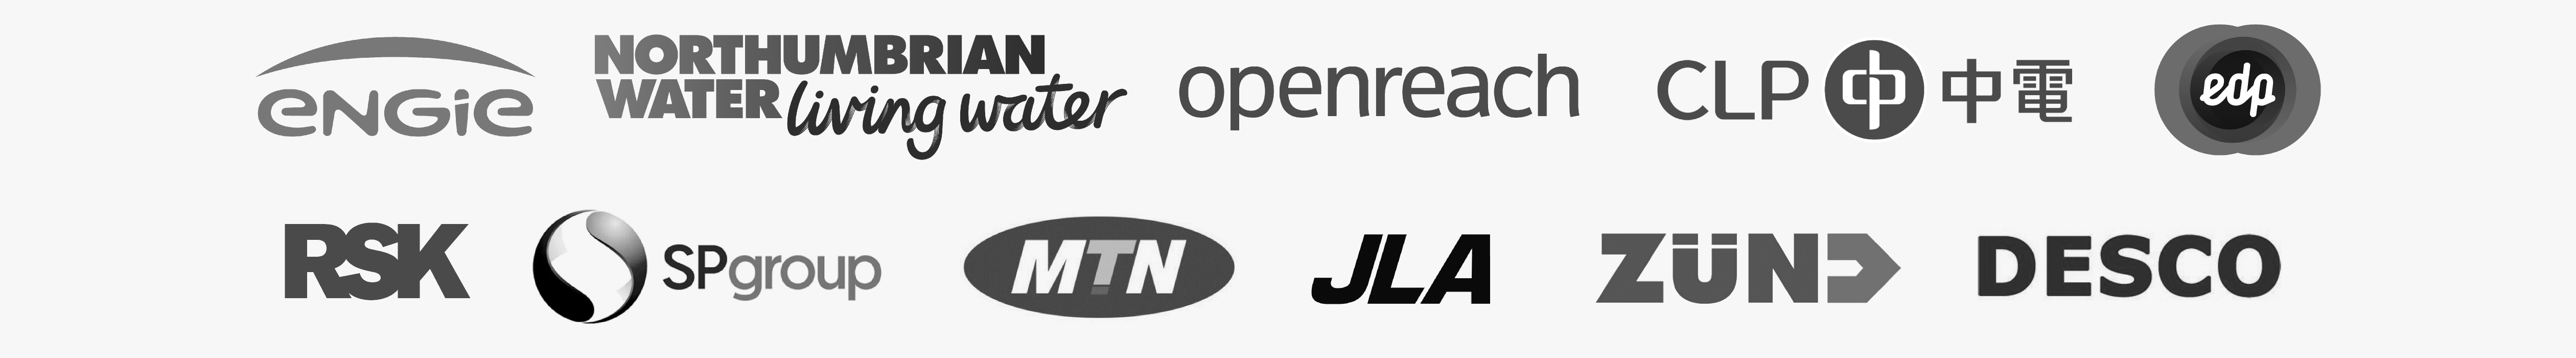 Our clients: Engie, Northumbrain Water, Openreach, CLP, edp, SP Group, JLA, ZUND, DESCO and MTN.